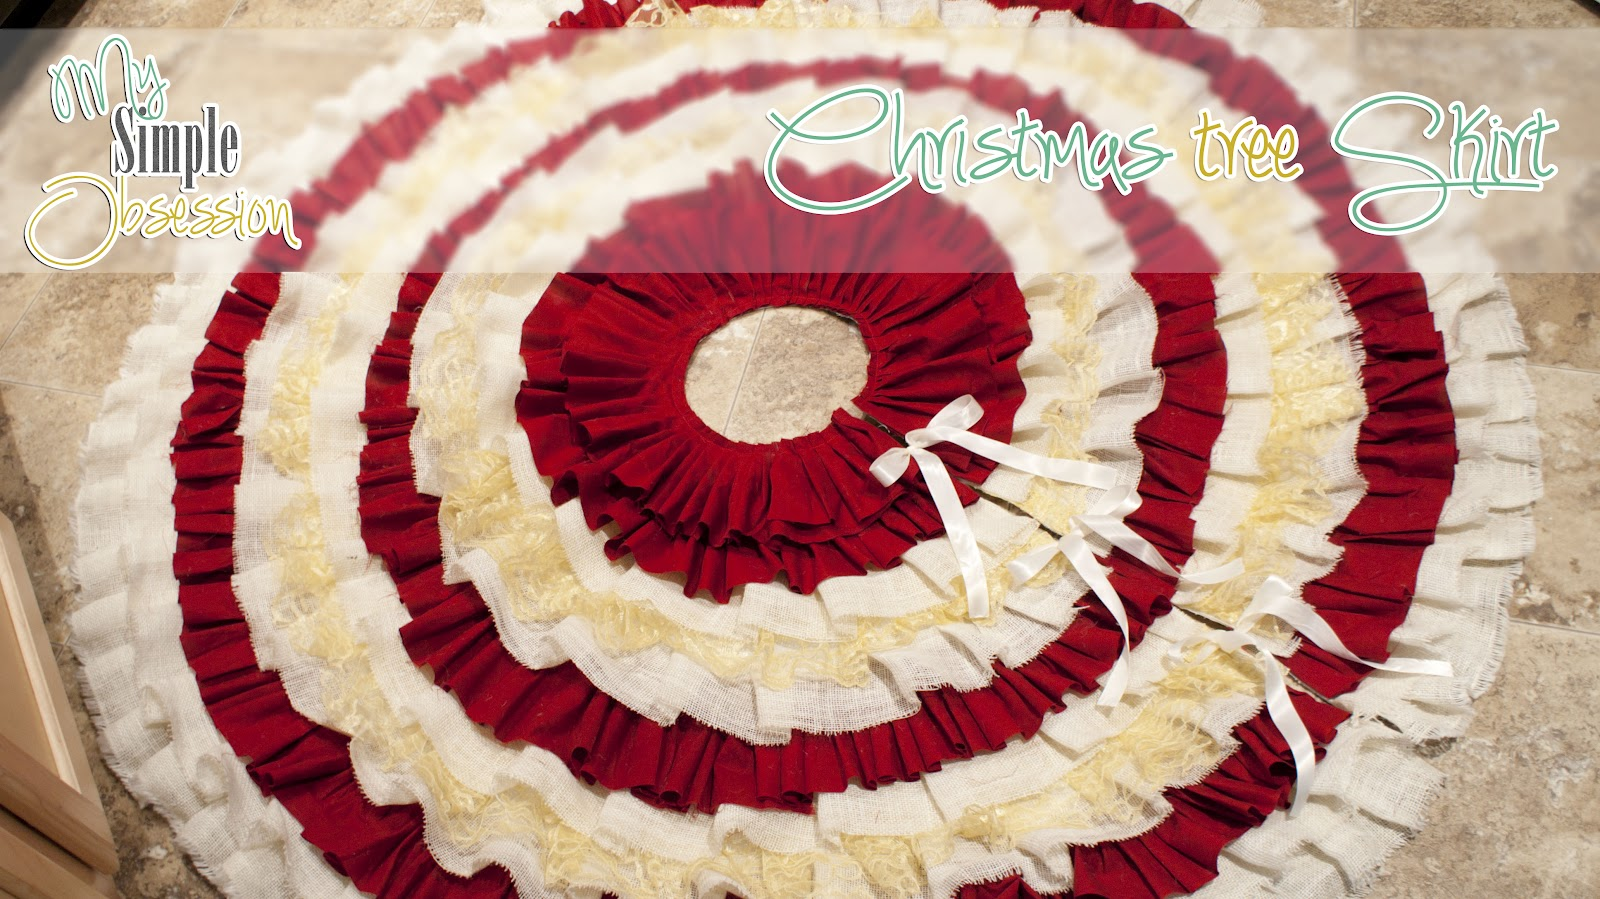 My Simple Obsession: DIY Ruffled Christmas Tree Skirt